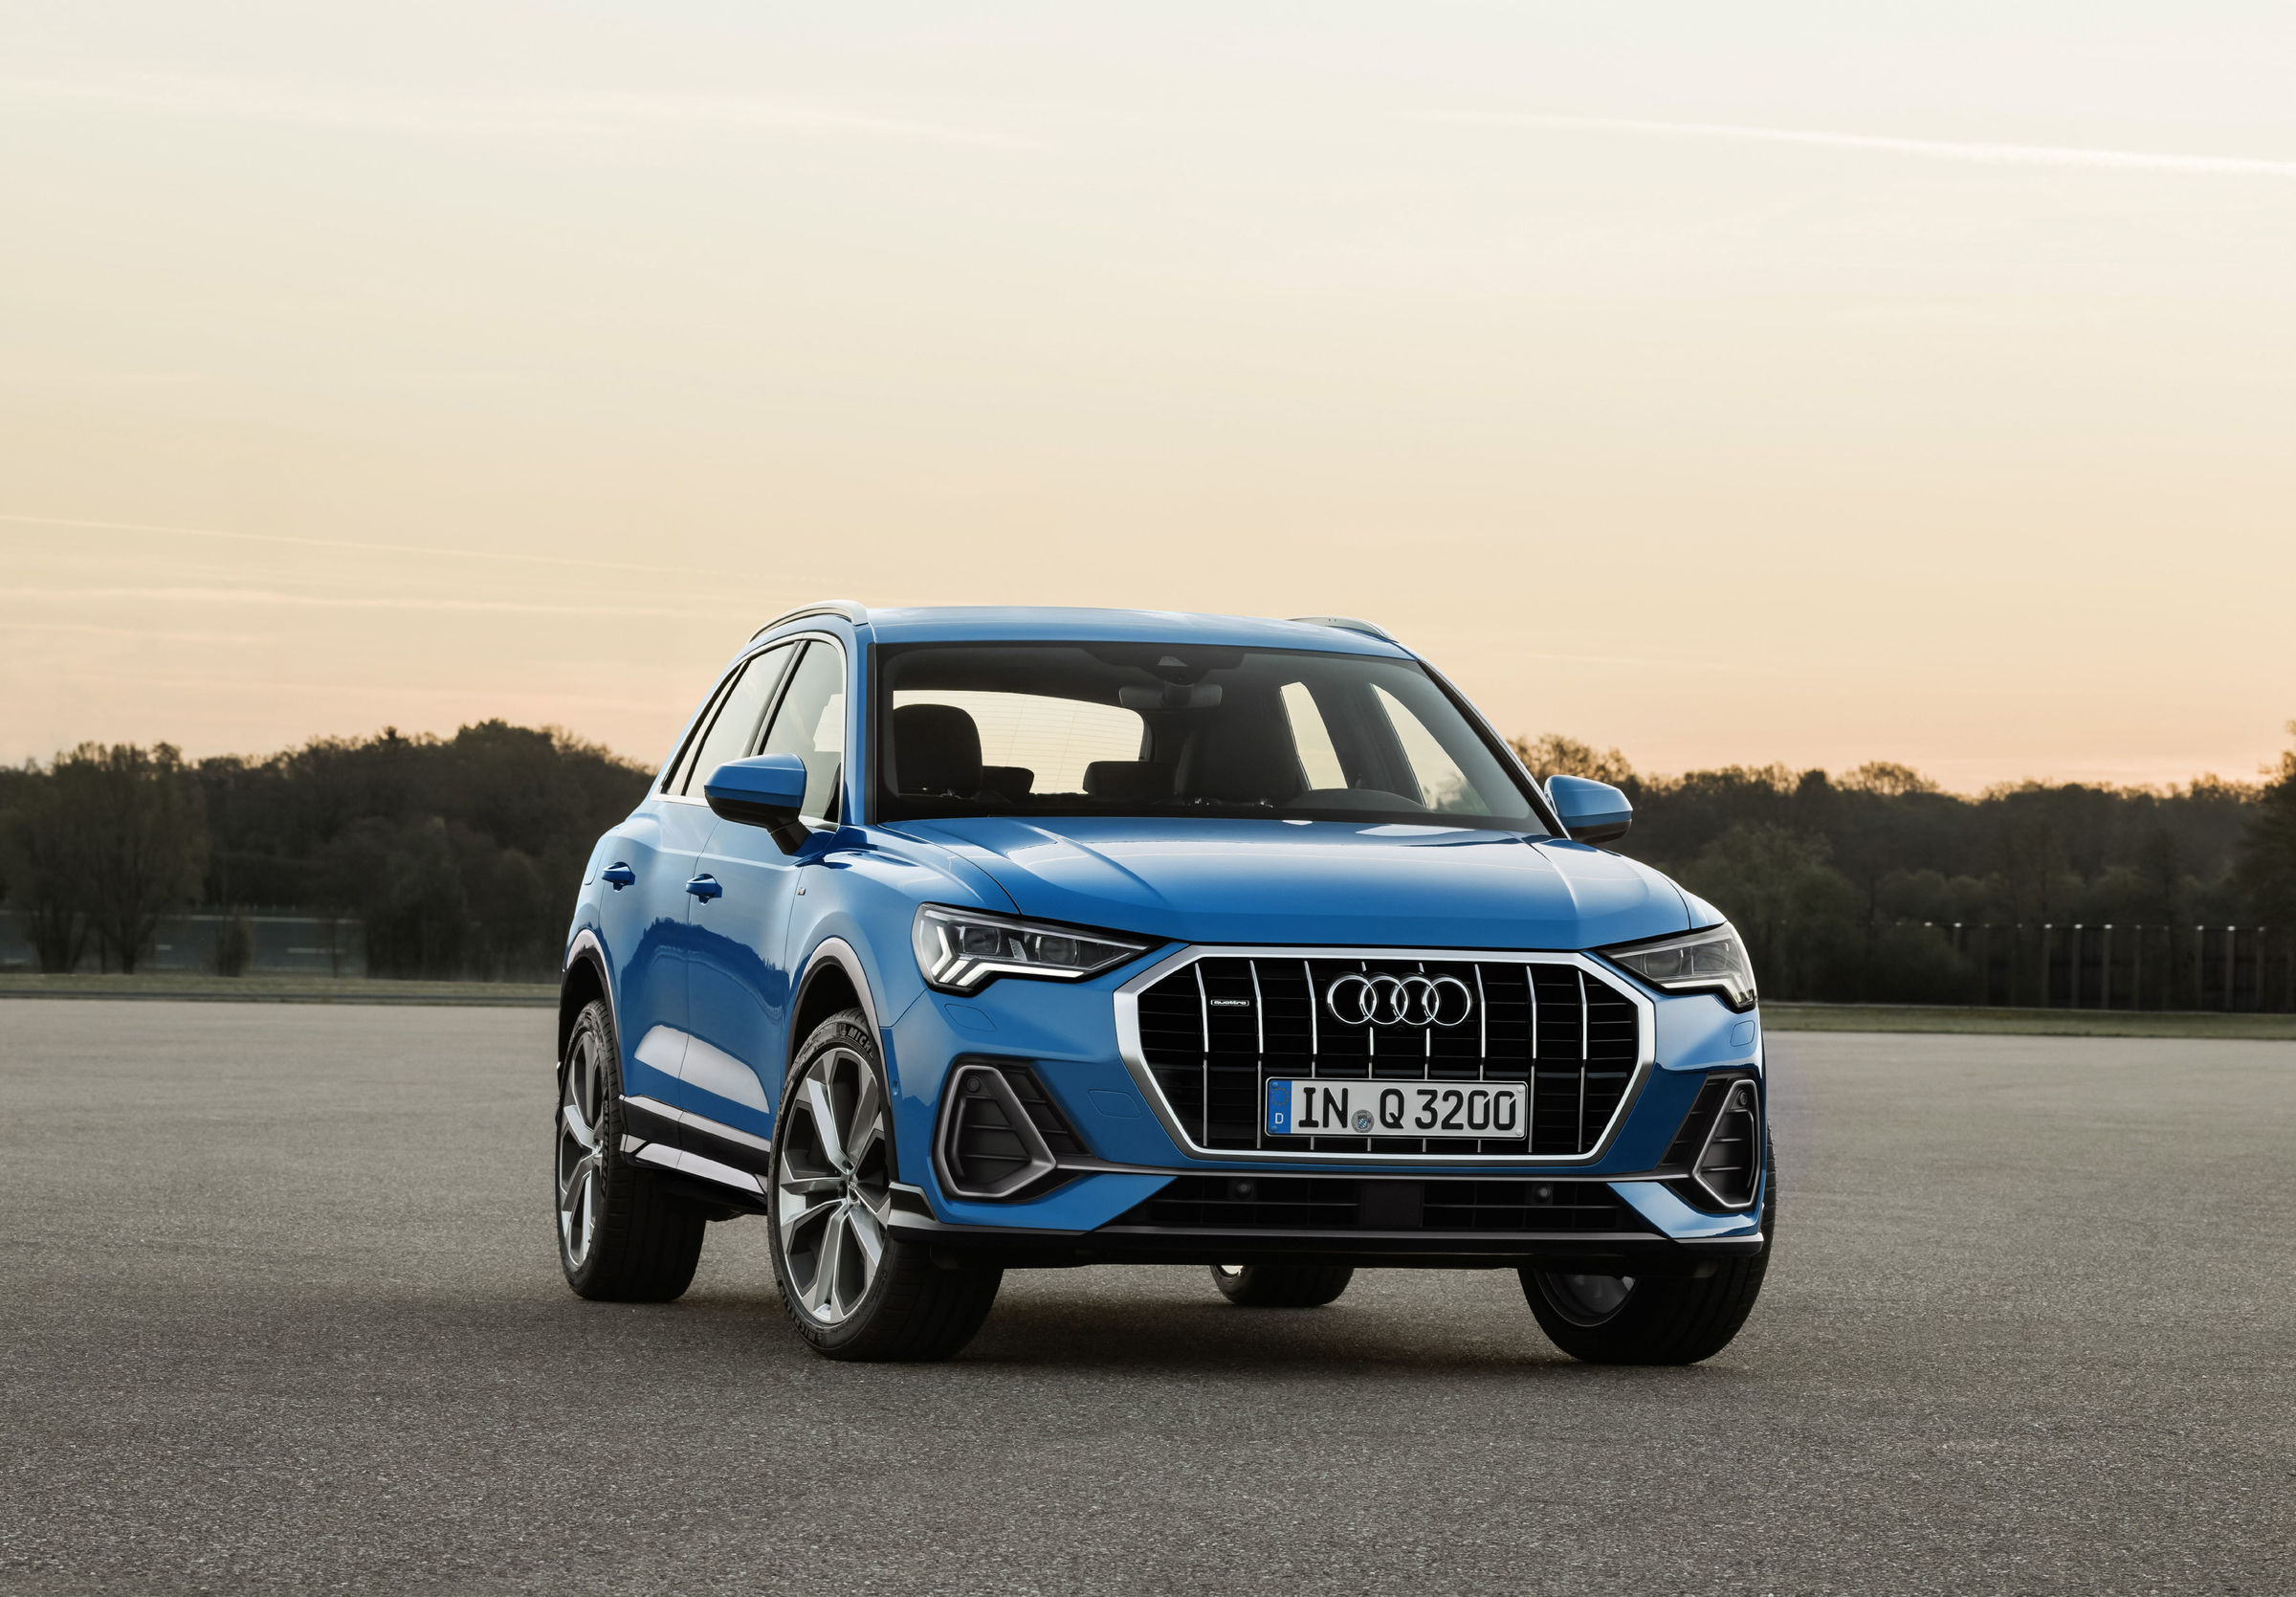 Audi Q3: The Second Generation